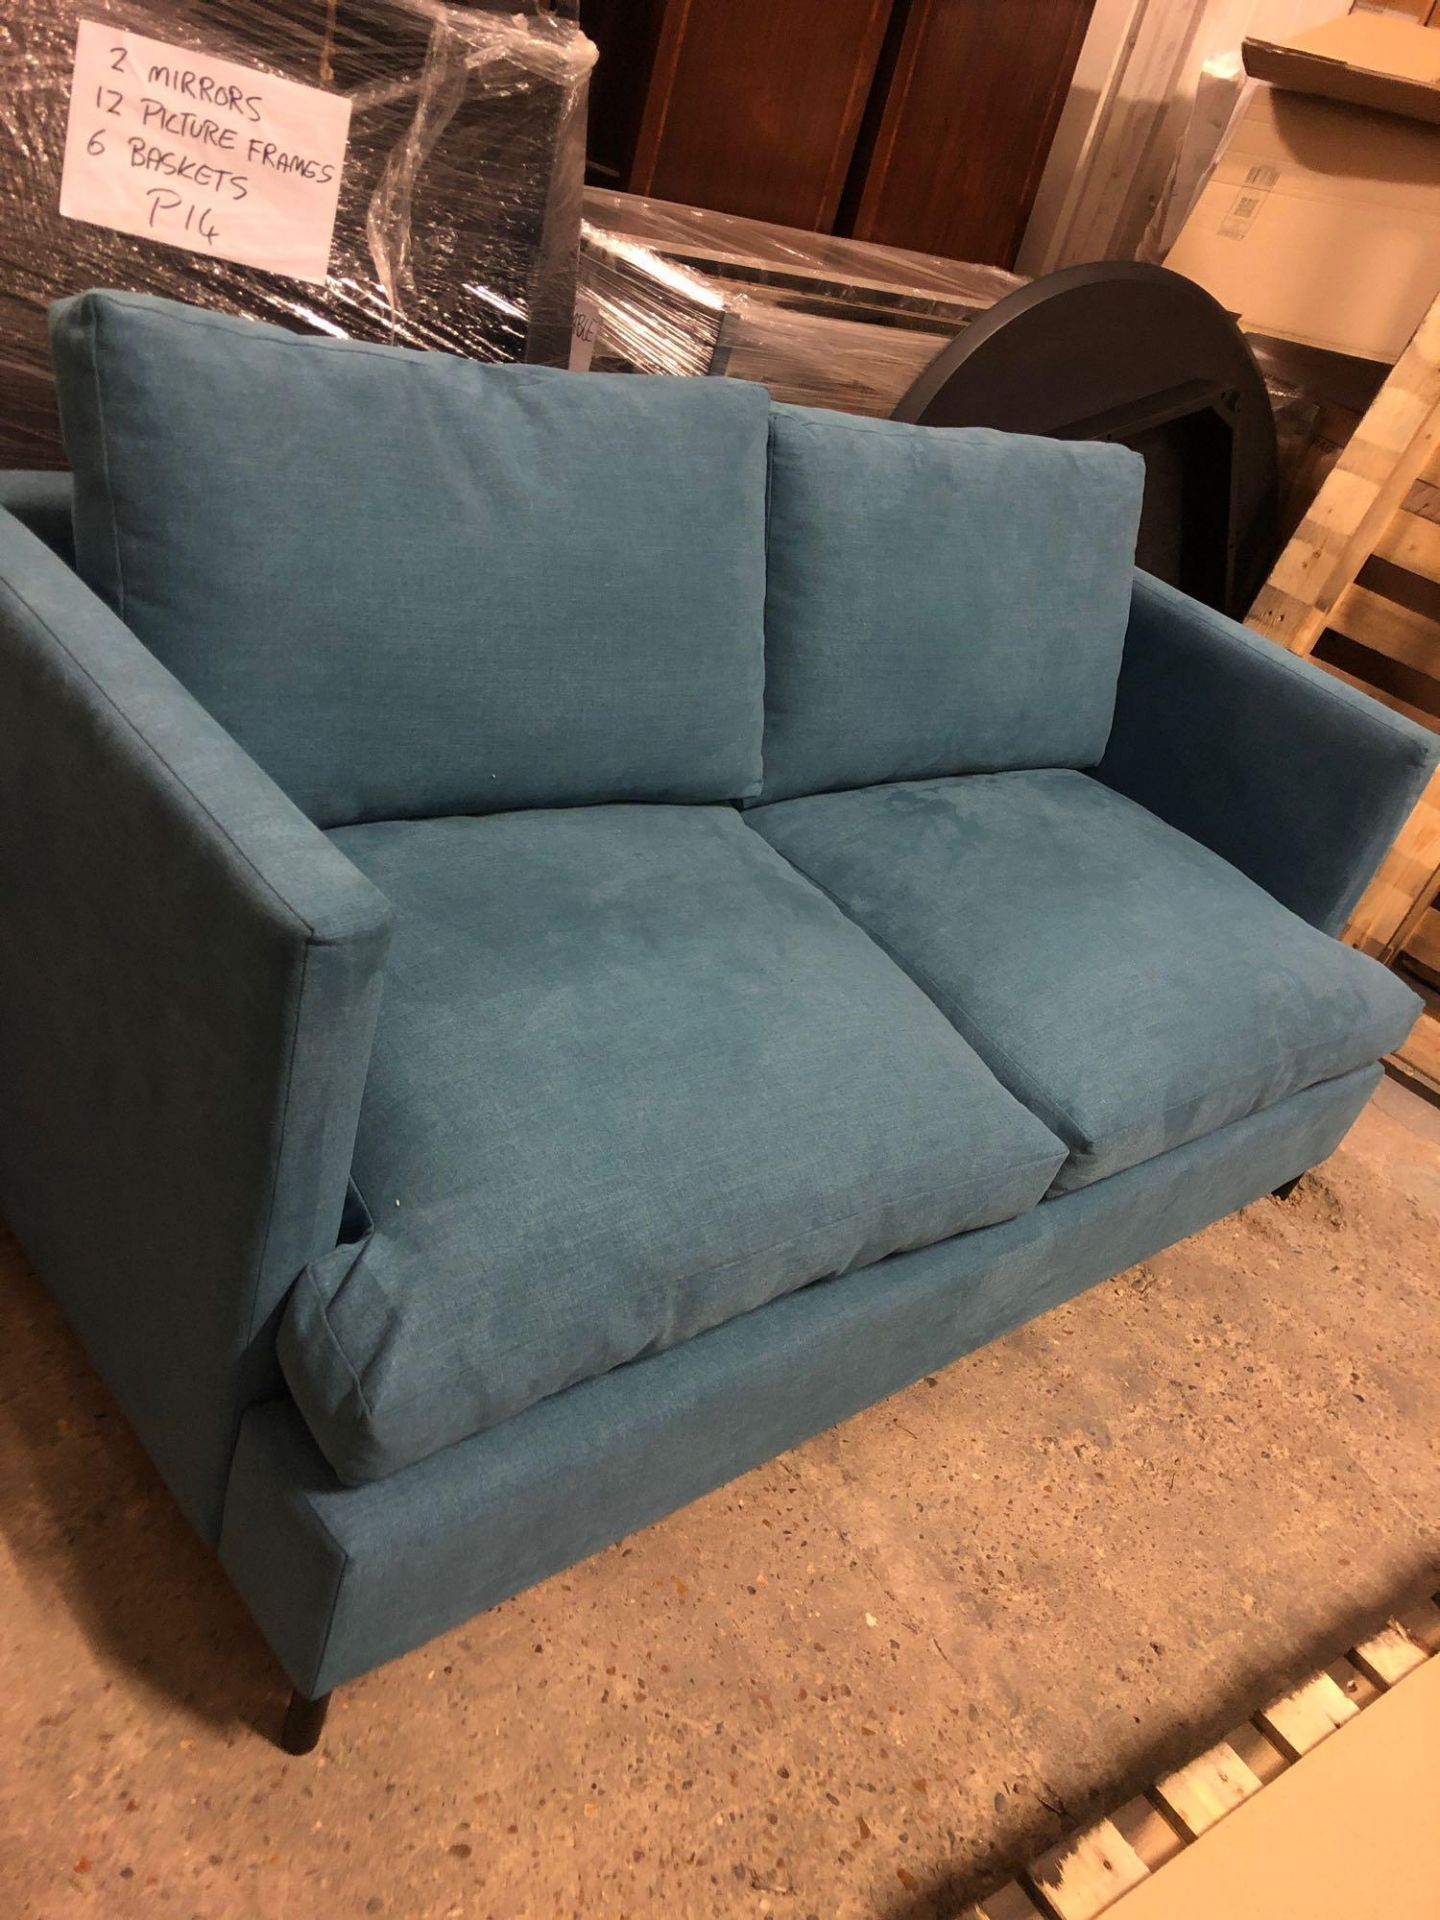 Weyburn 3 Seater Sofa Bed Turquoise The Weyburn 3 Seater Sofabed Is A Both Versatile And Stylish - Image 2 of 2